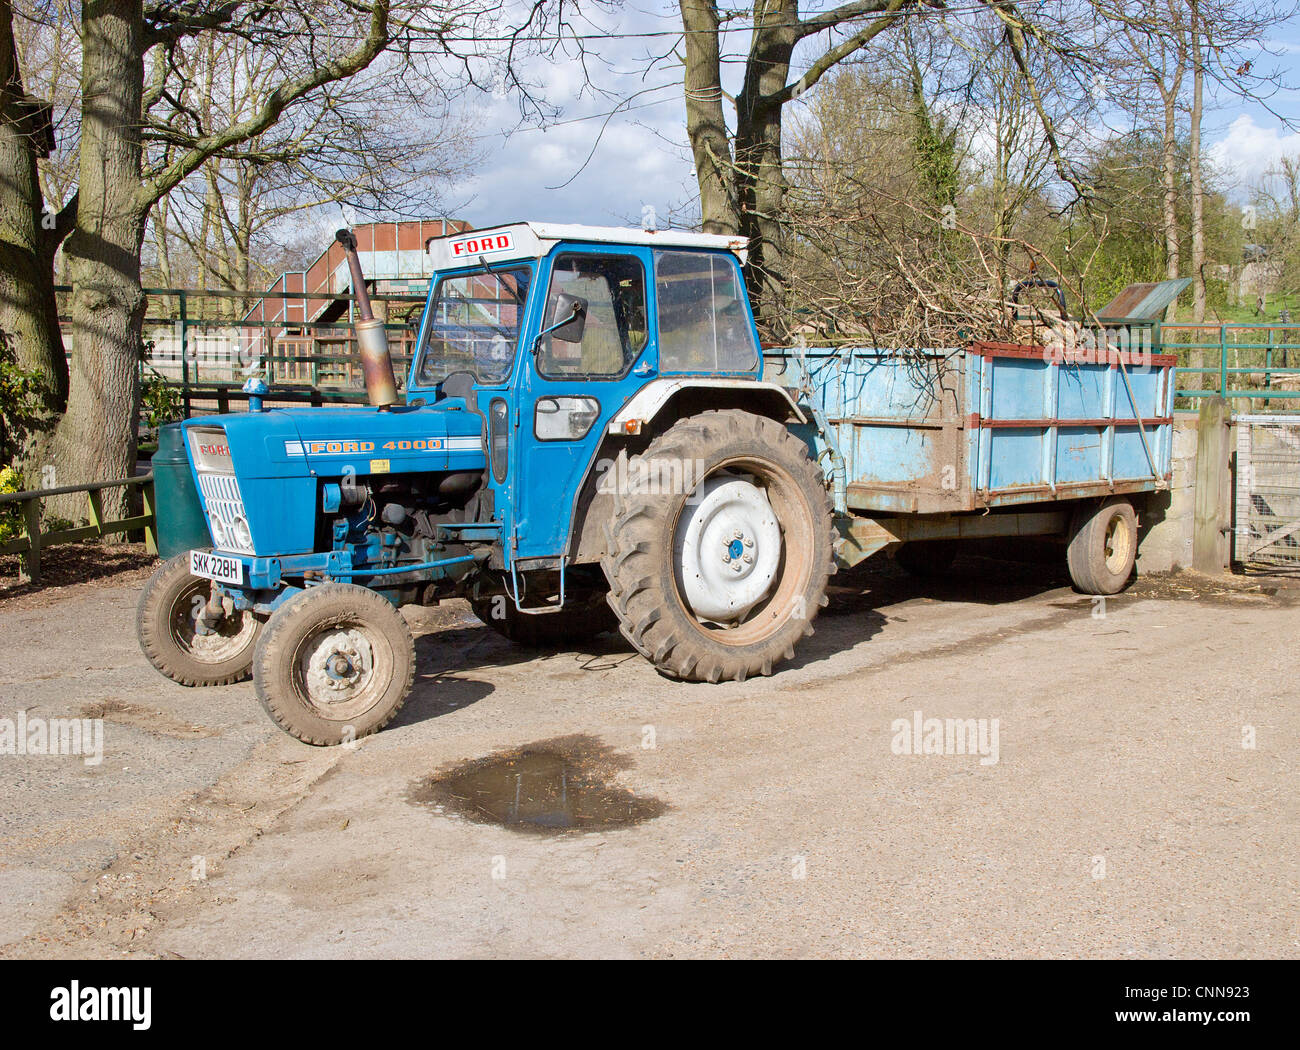 Ford 4000 tractor with loaded trailer attached stock image